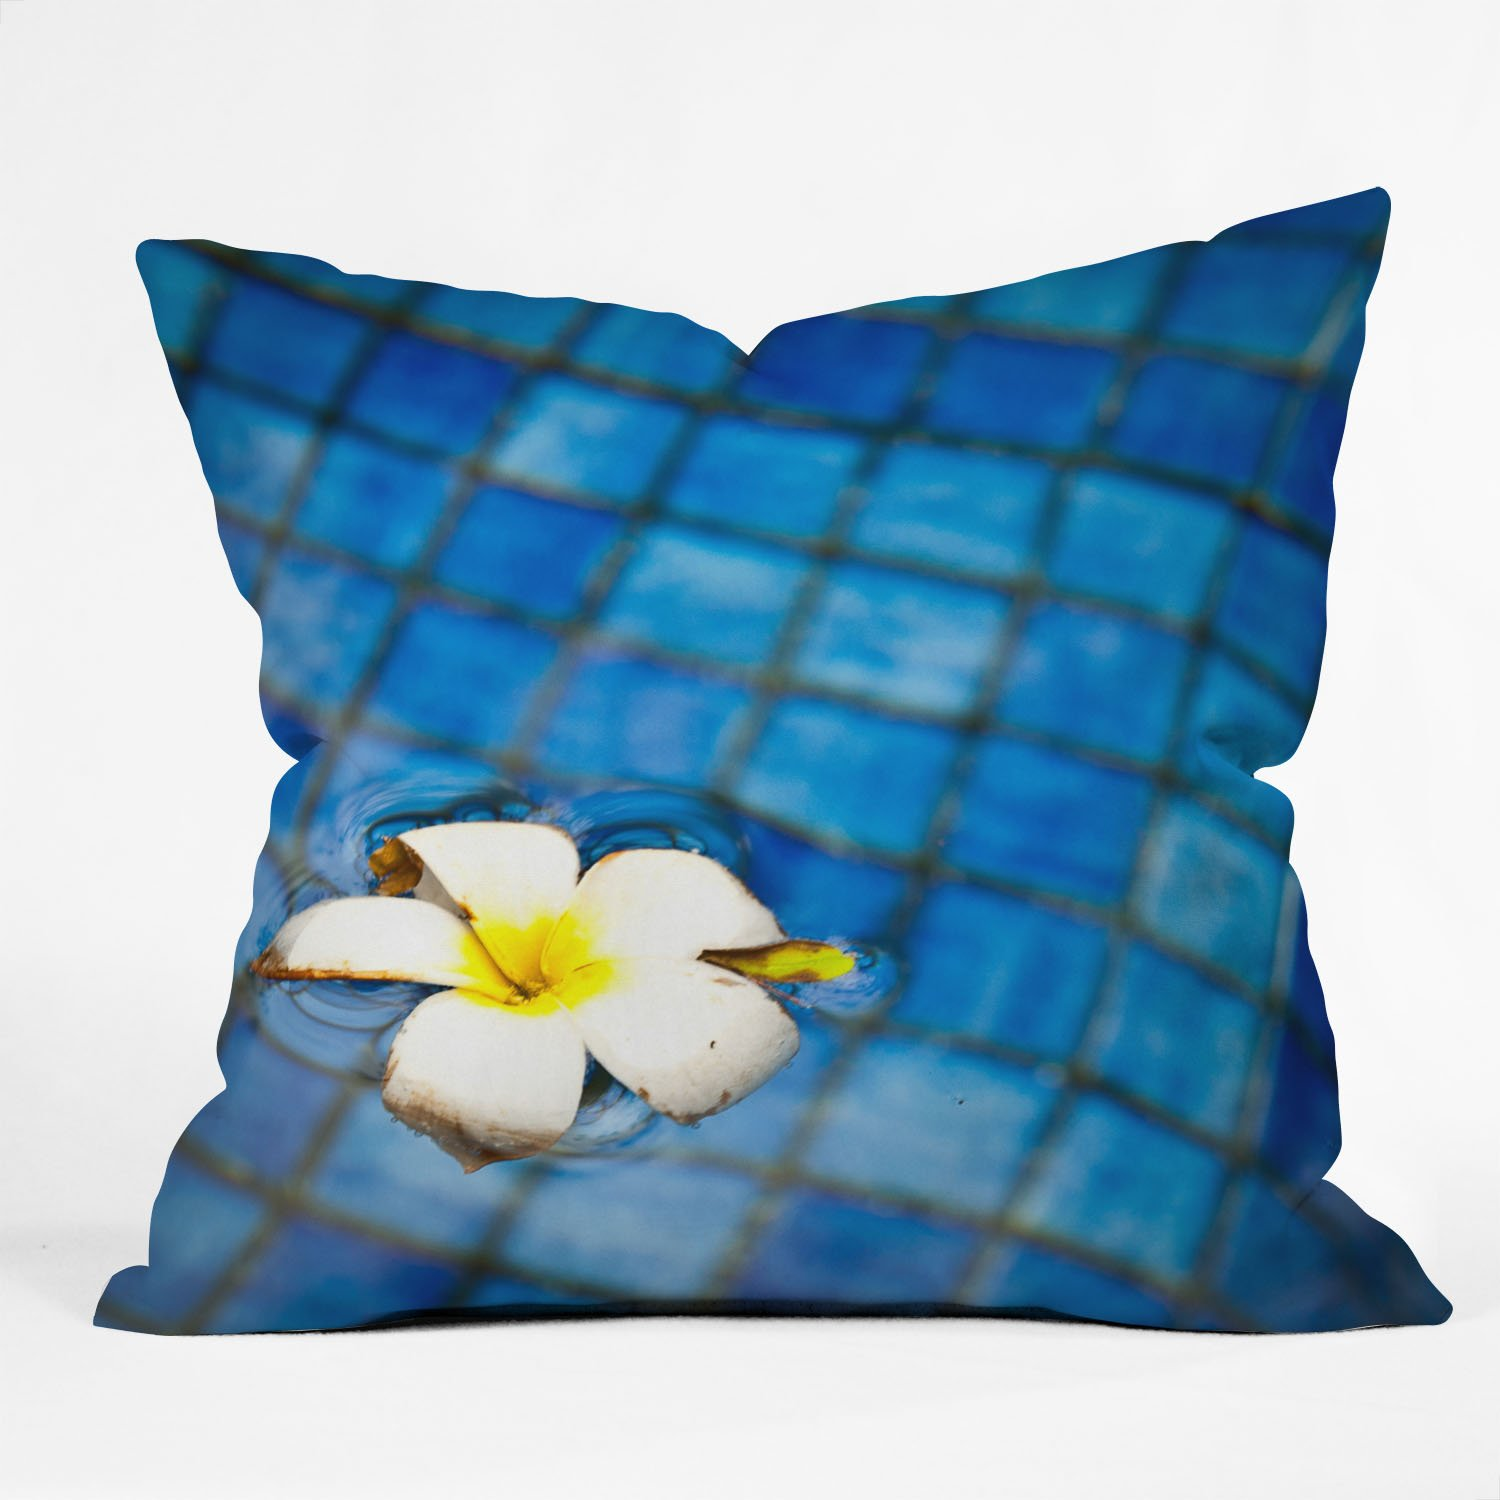 Large Flower Throw Pillow : Throw Pillow, 26 x 26-Inch DENY Designs Flower Bed Sofa Large Pillow eBay